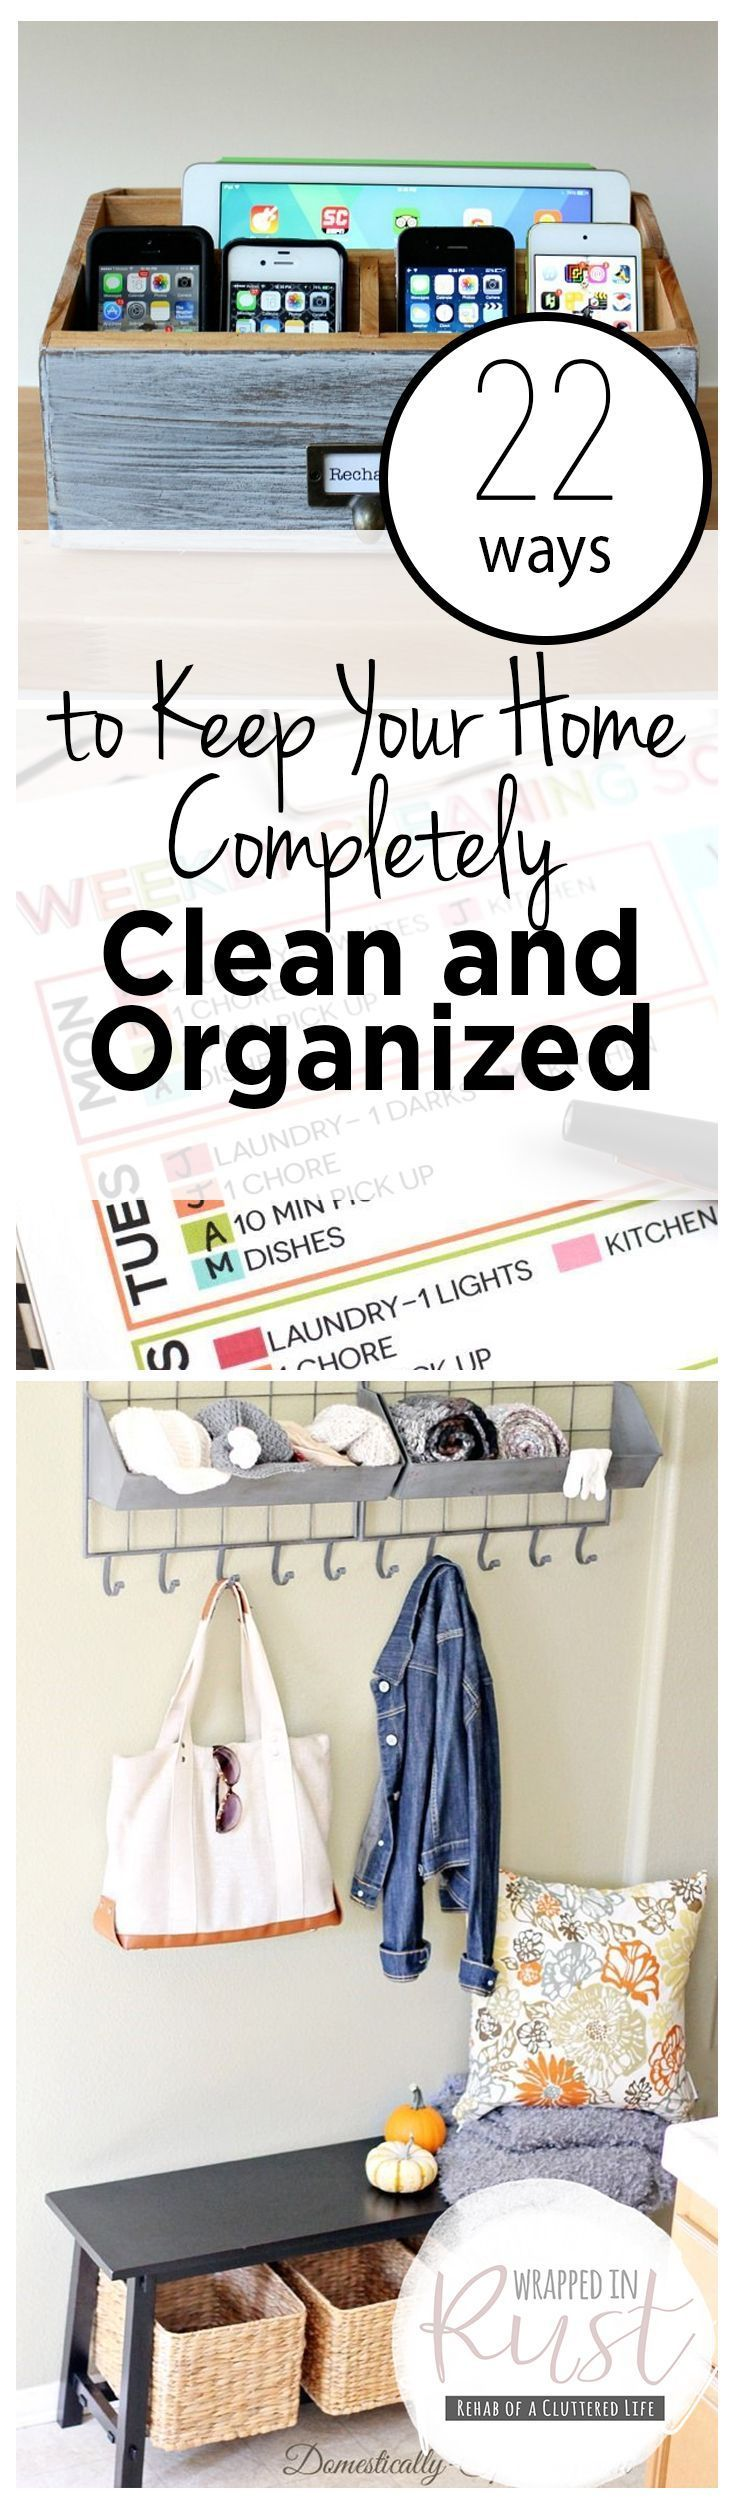 best organize my life images on pinterest households